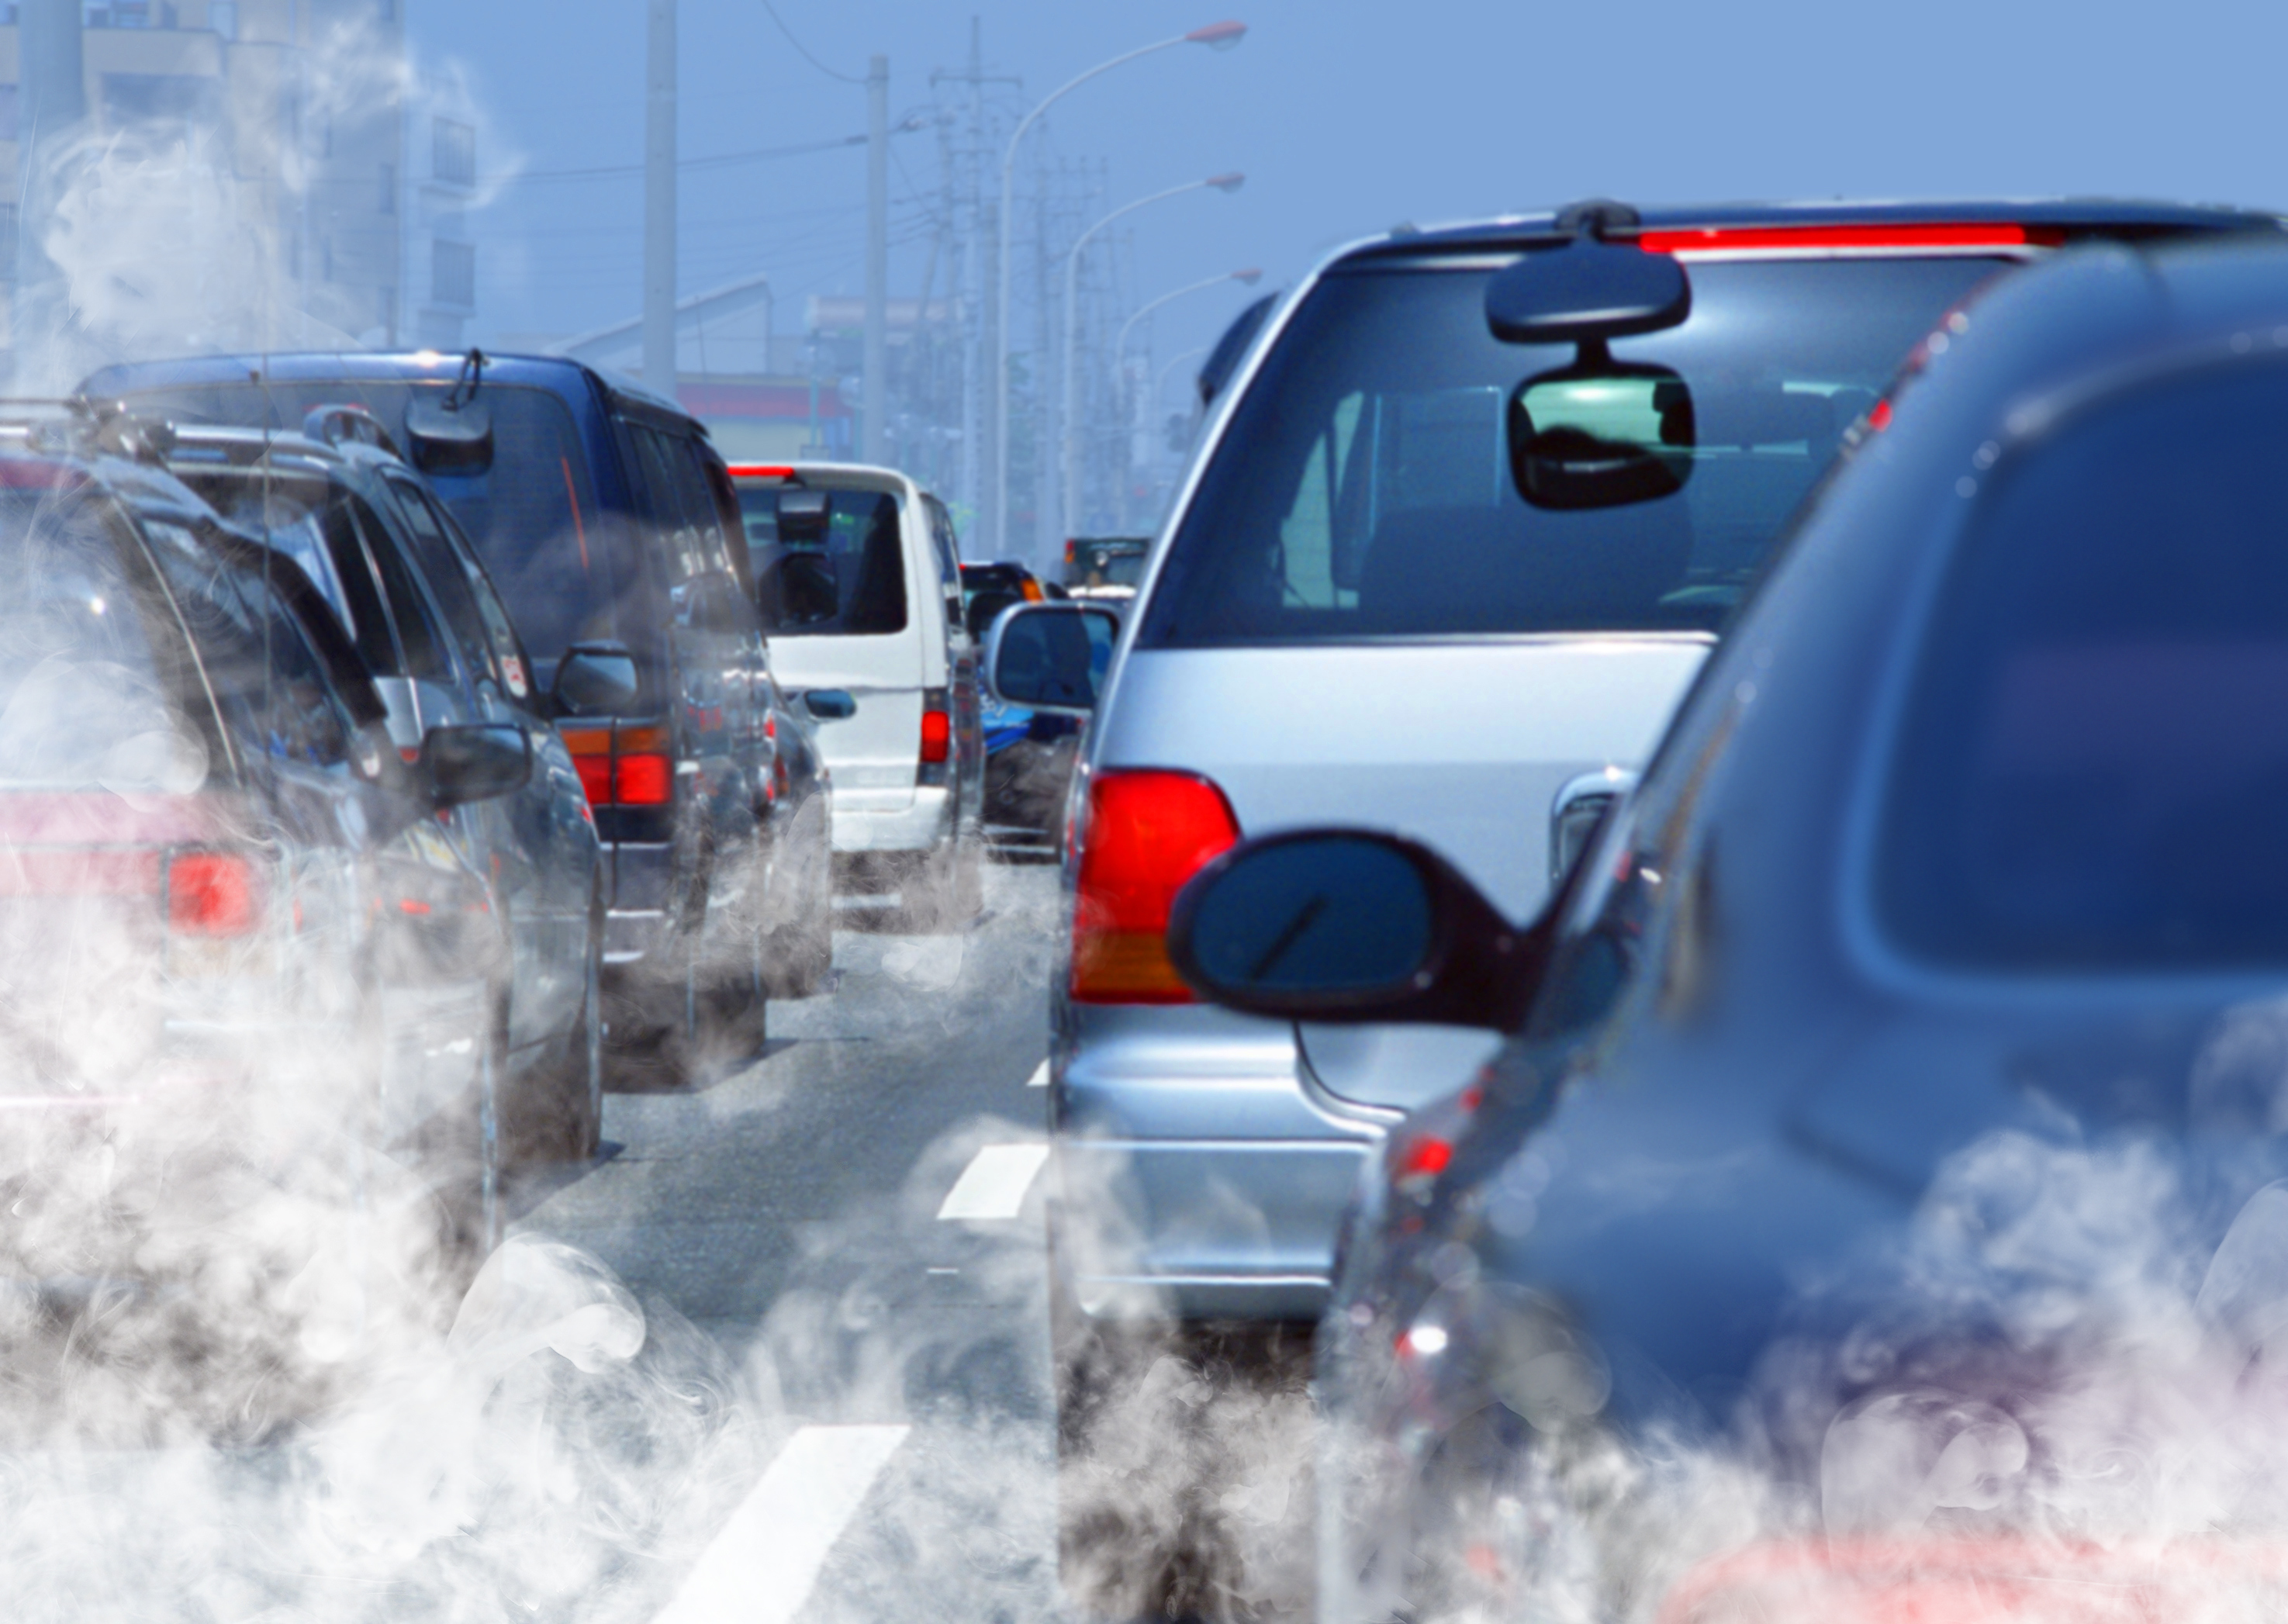 Two million cars in the Philippines are the reason for 80% of air pollution.